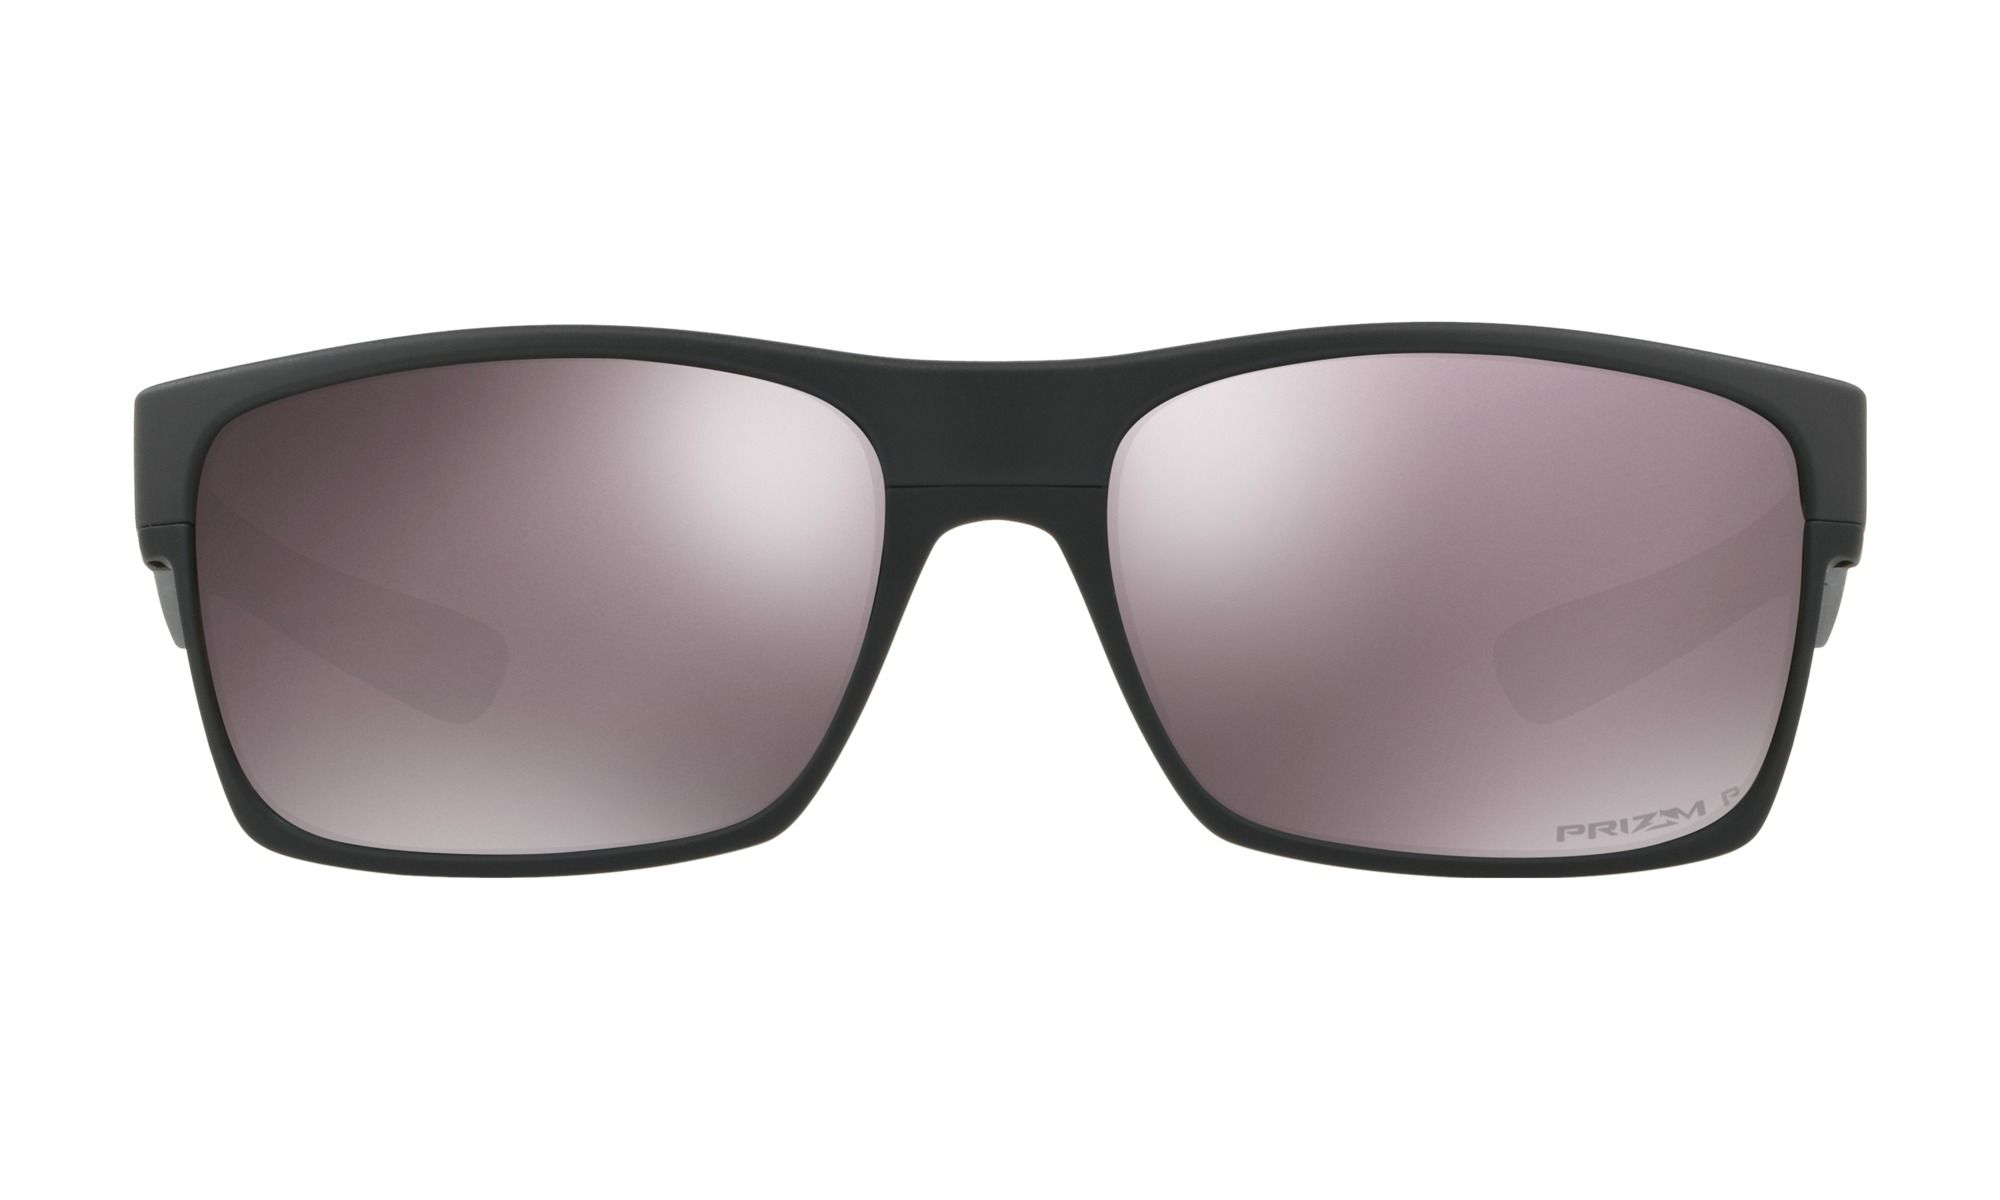 c1942e5004b Buy Oakley sunglasses for Mens TwoFace™ Covert Collection with Matte Black  frame and Prizm Daily